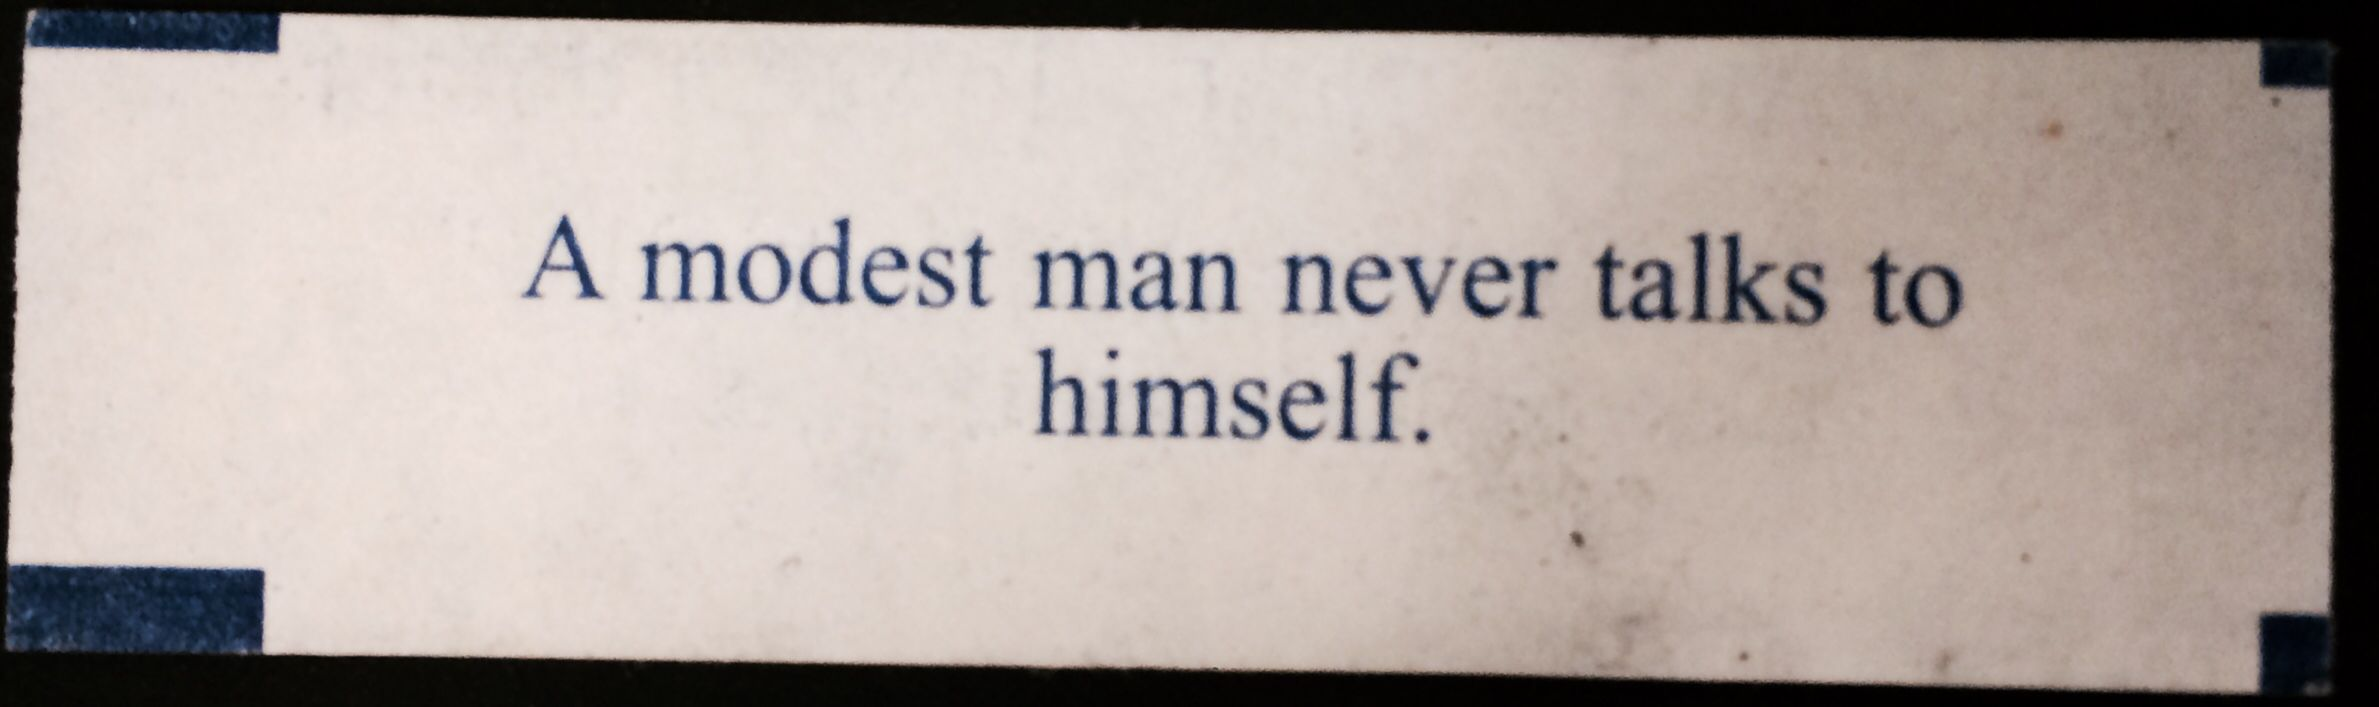 A modest man never talks to himself tattoo quotes